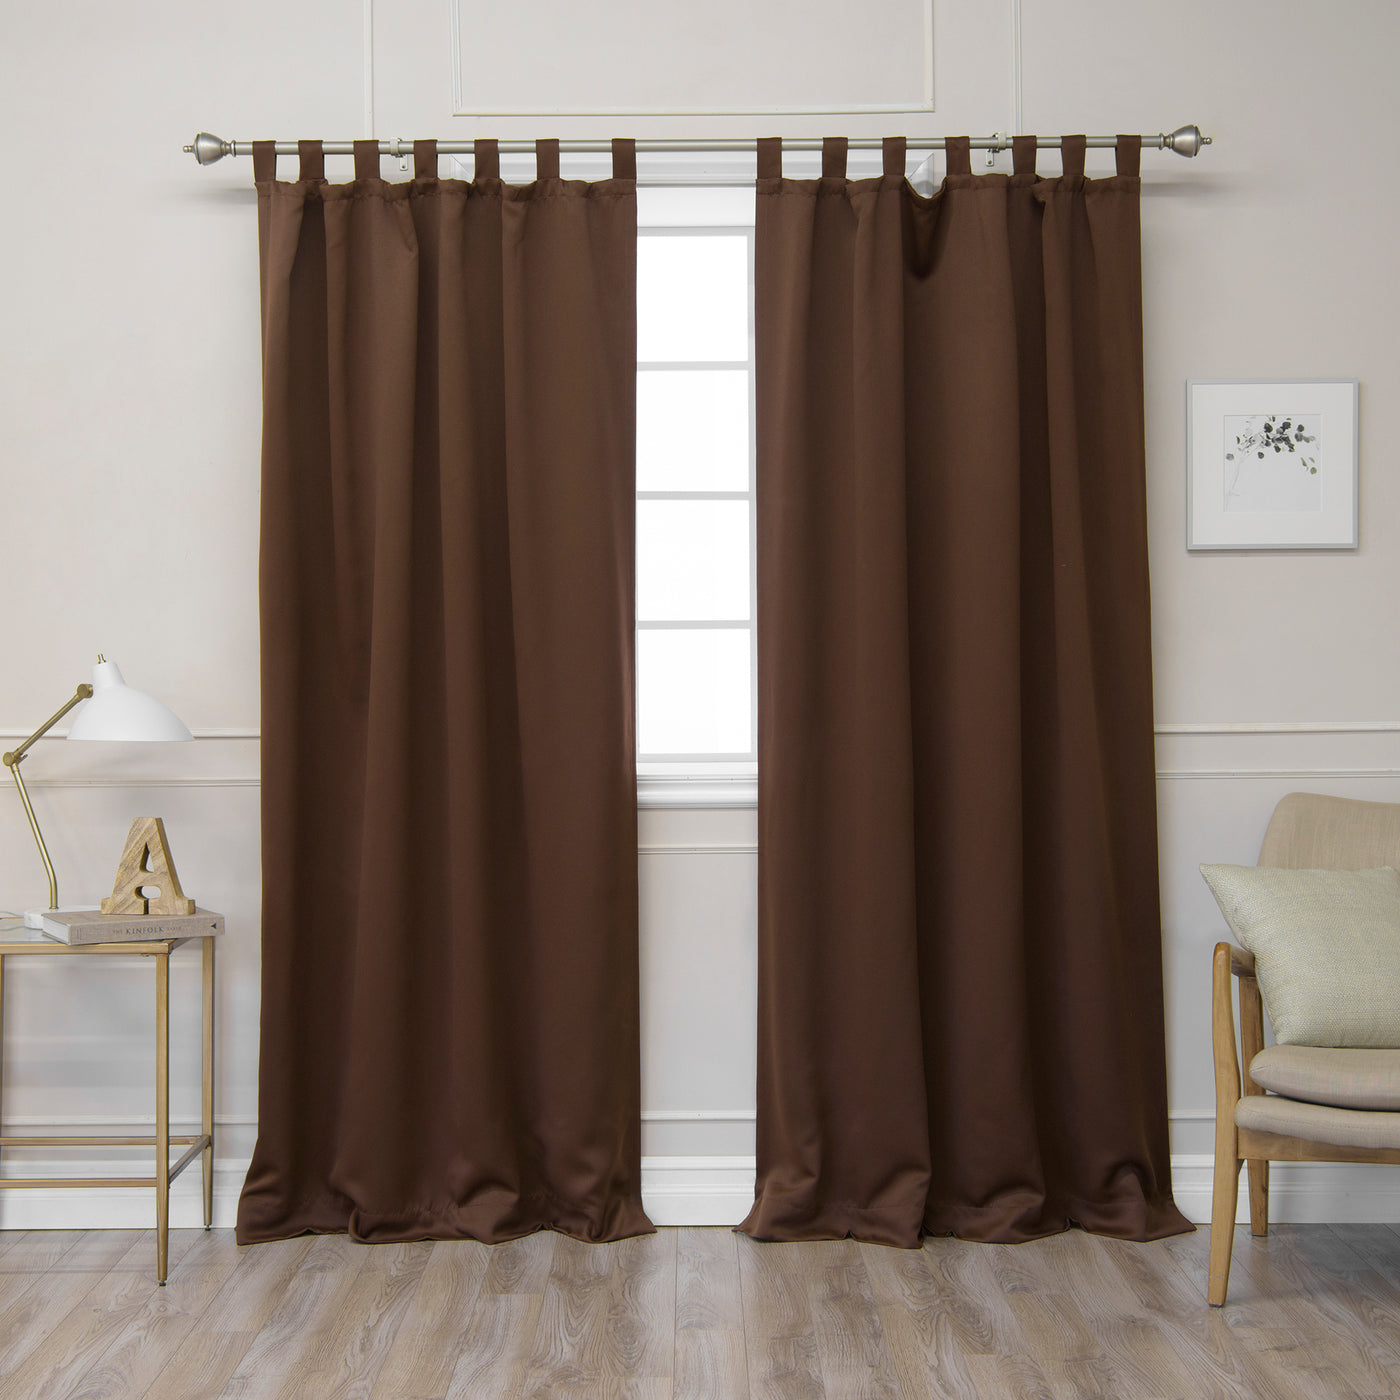 Basic Tab Top Blackout Curtains